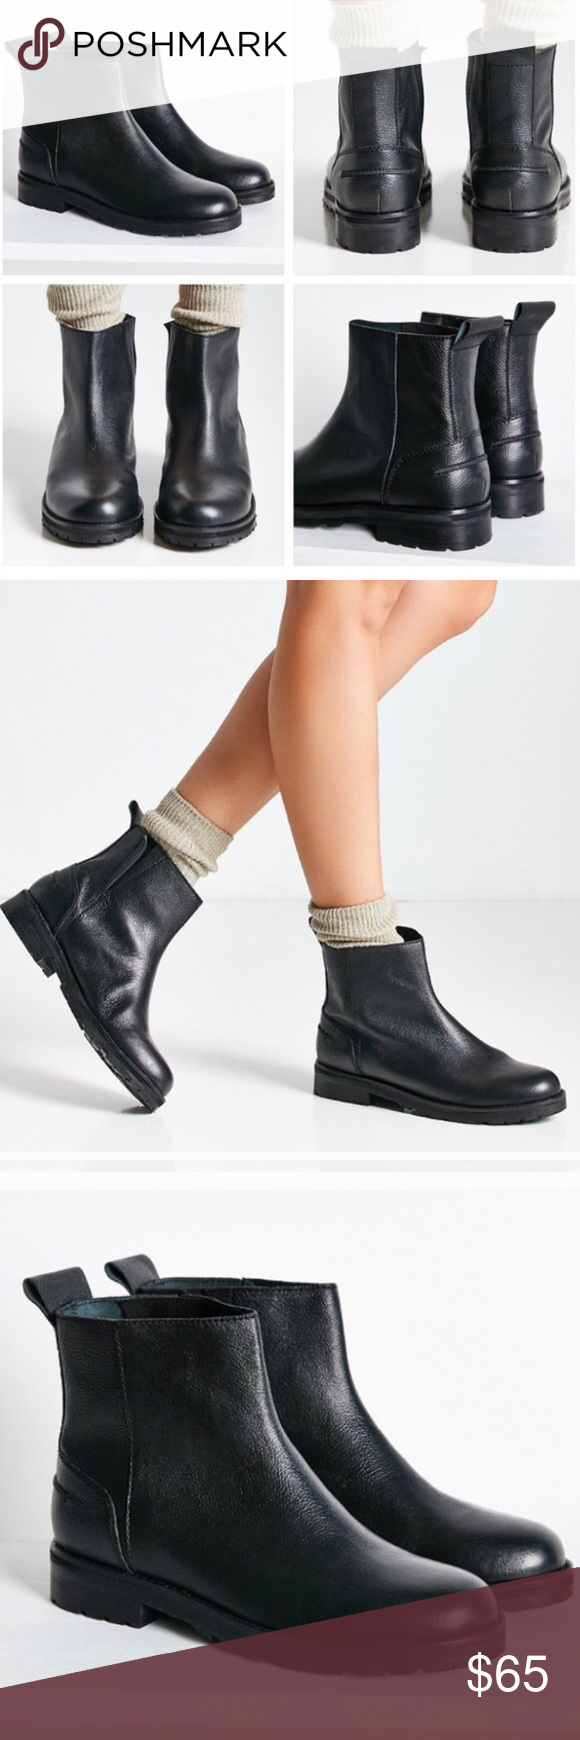 Urban Outfitters Pull On Leather Boots Urban Outfitters Jay Leather Pull On Boots. Minimal Pull On ankle boots in a soft grainy leather. Detailed with stretch paneling at the seam, plus heel tabs for easy on/off.                                      Content/Care: leather, rubber, wipe clean. Urban Outfitters Shoes Ankle Boots & Booties